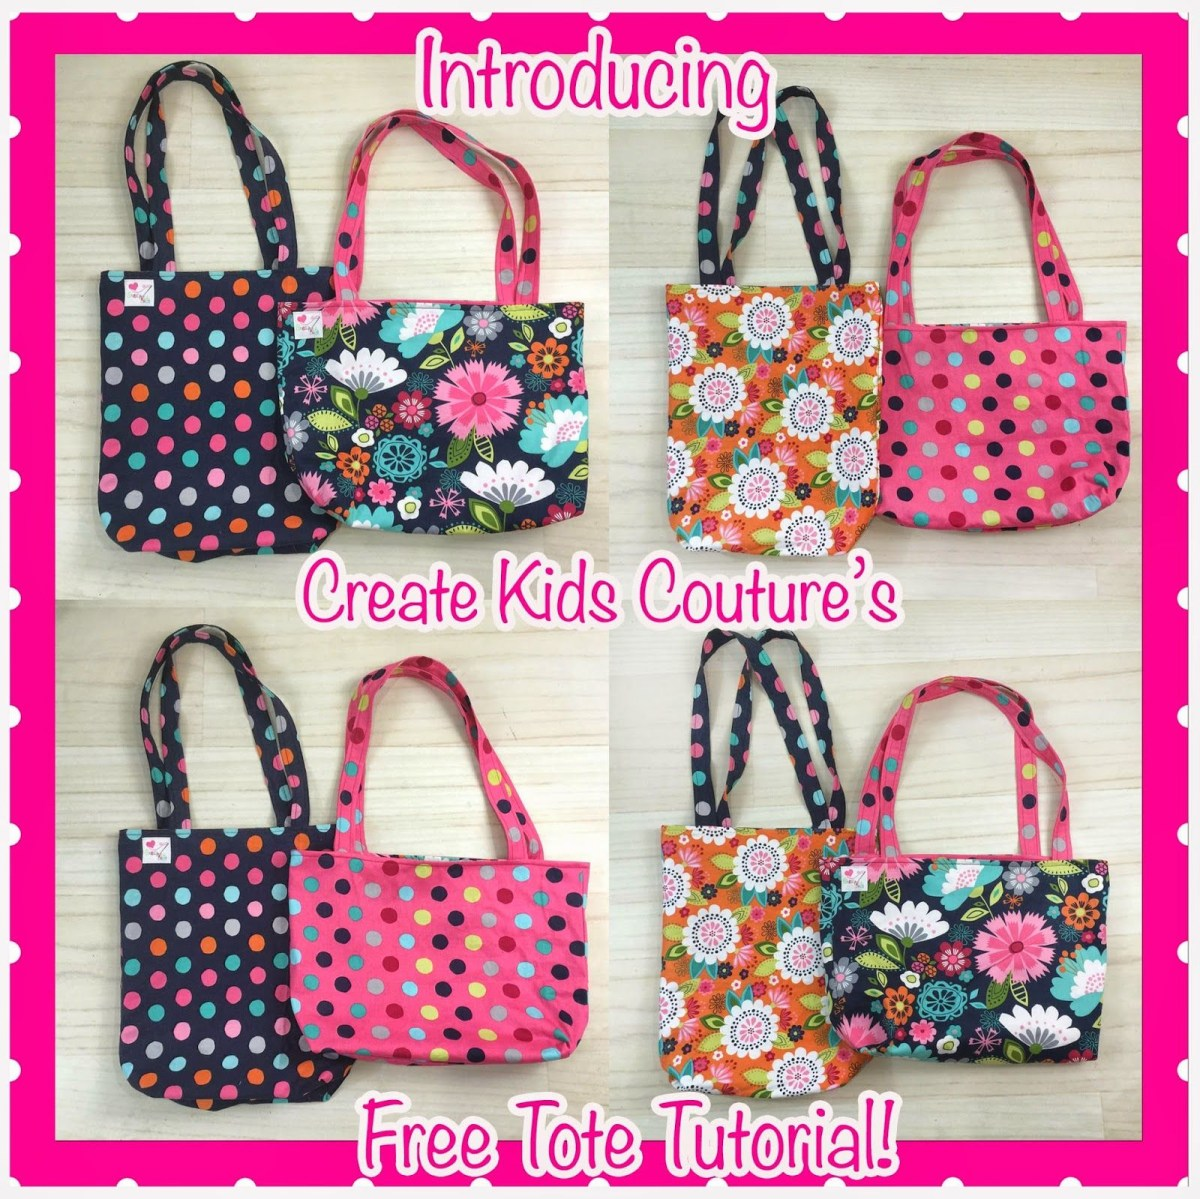 Tote Bag Sewing Pattern Free Tote Bag Tutorial Easy To Sew Free Patterns On The Ckc Blog